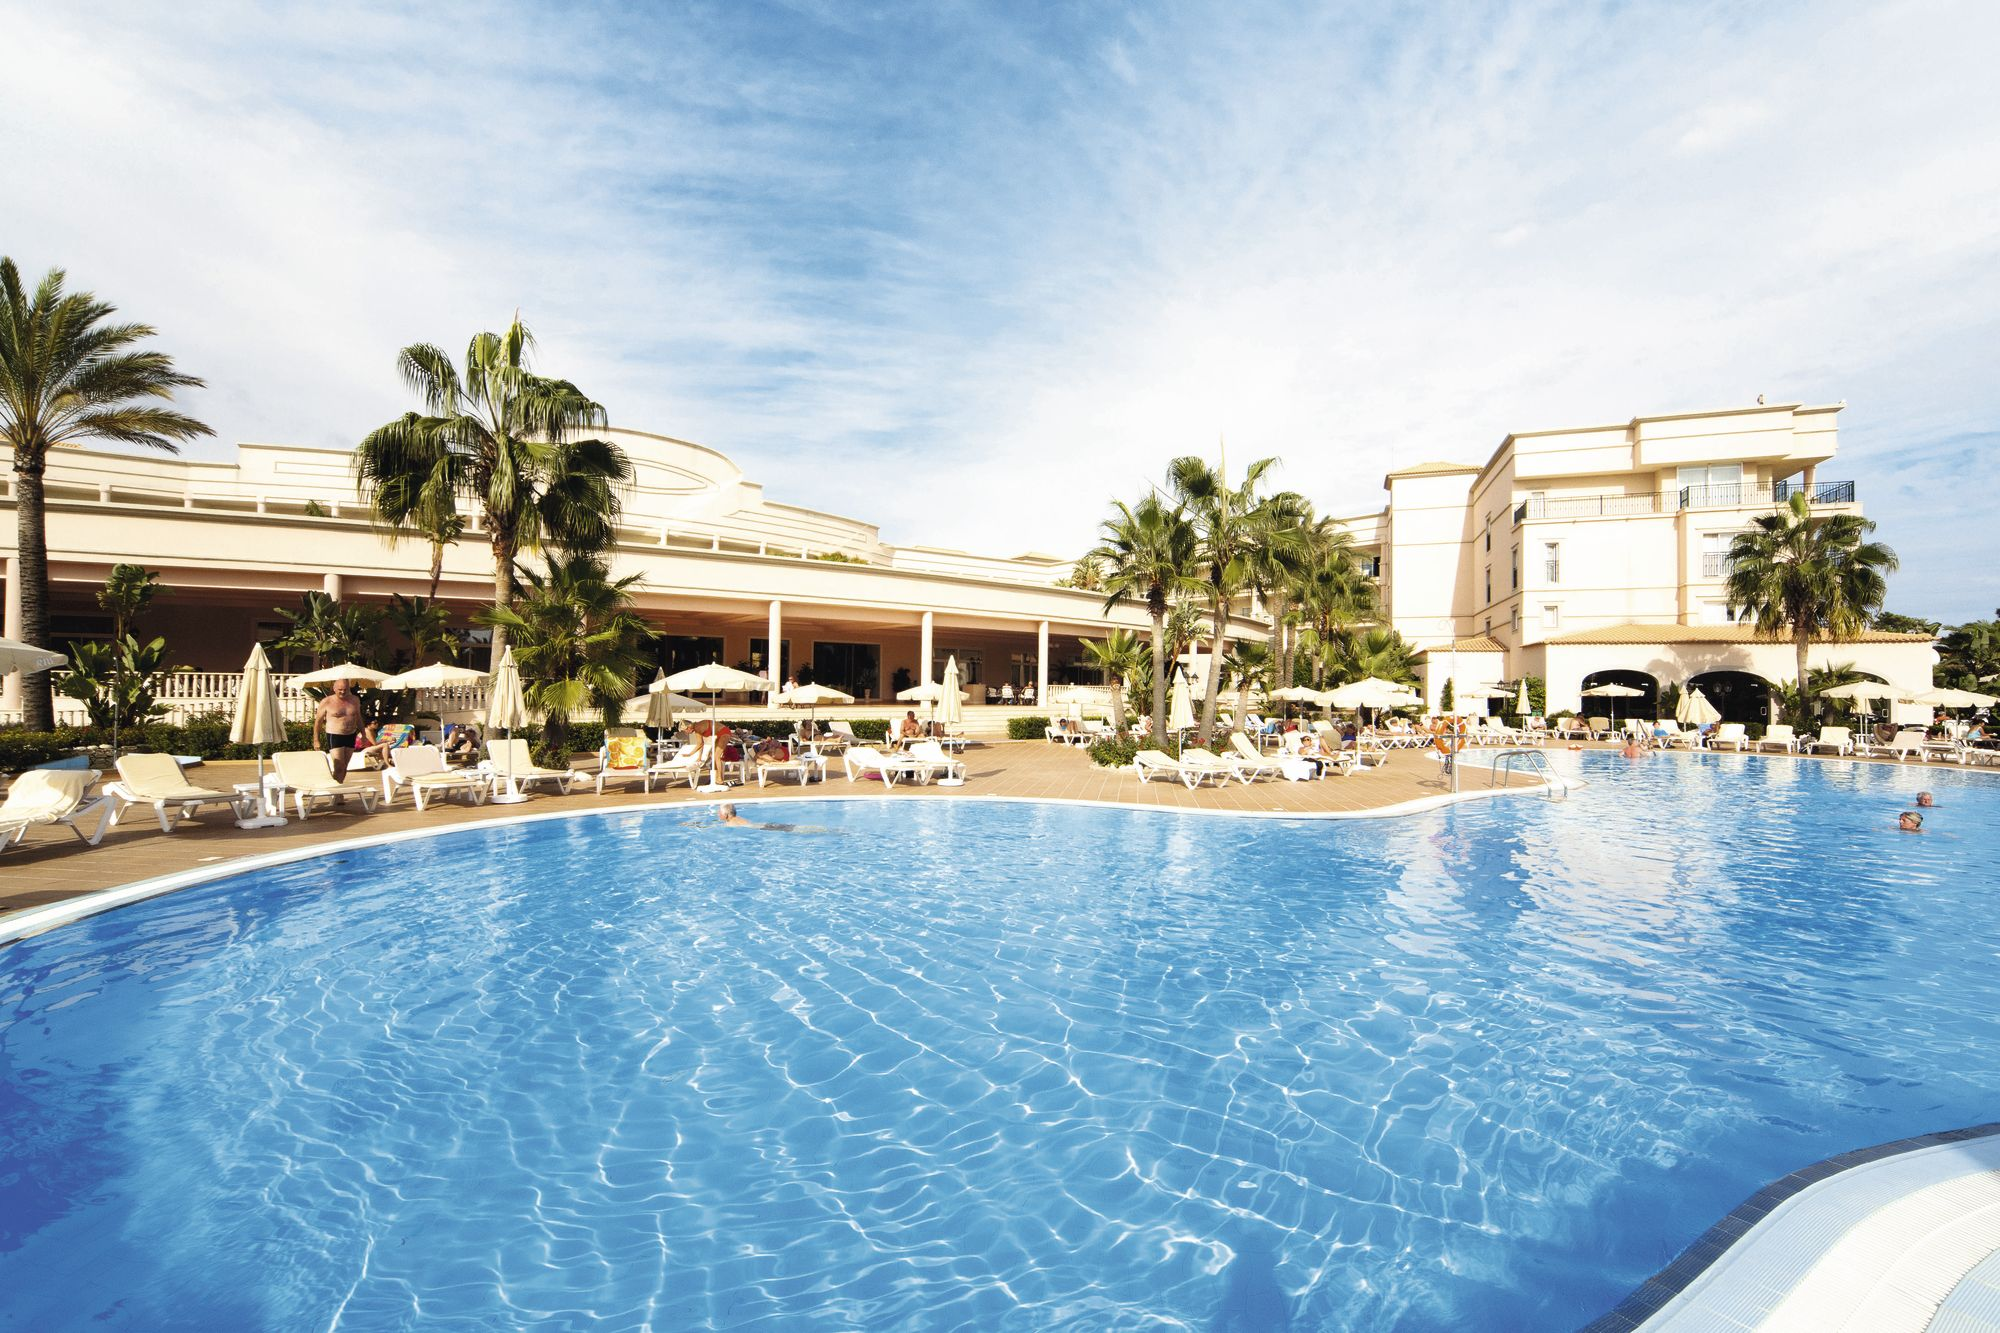 Holiday to Tui Blue Falesia Atlantic in OLHOS DAGUA (PORTUGAL) for 3 nights (HB) departing from stansted on 16 May